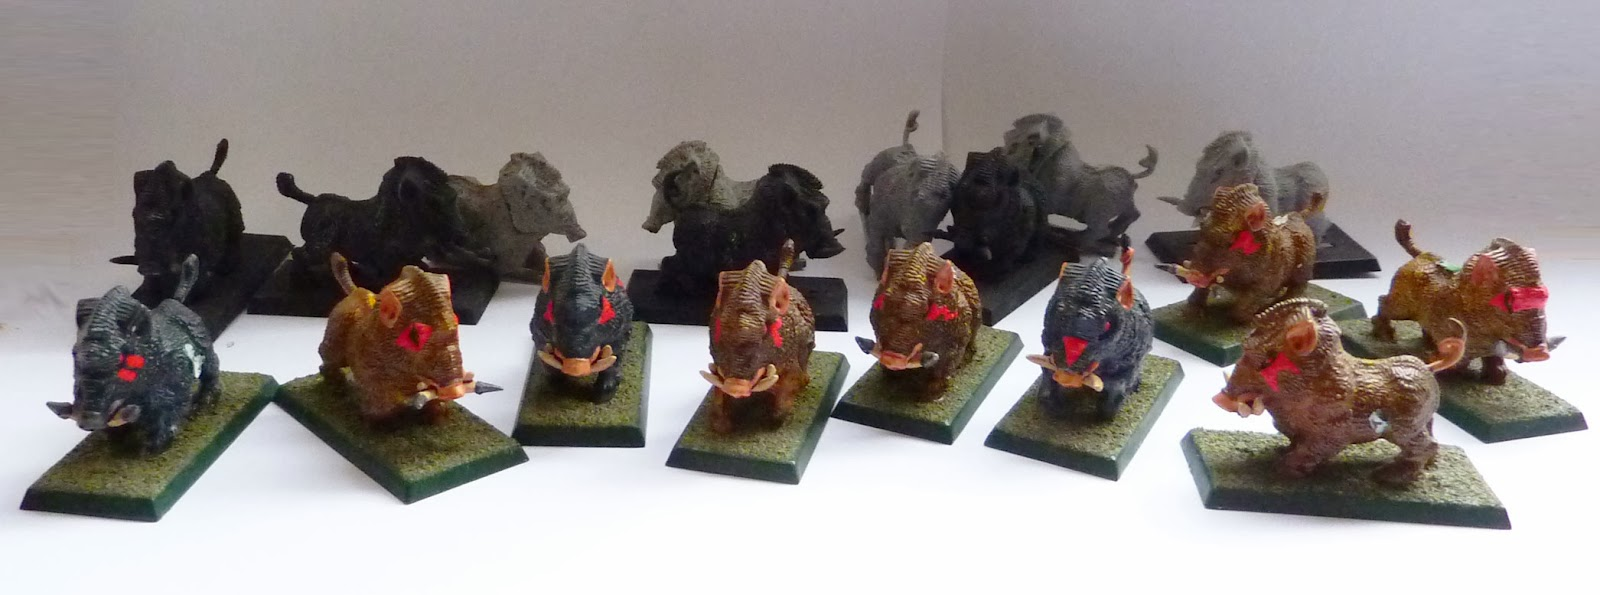 Work in progress - classic Savage Orc Boar Boyz conversions